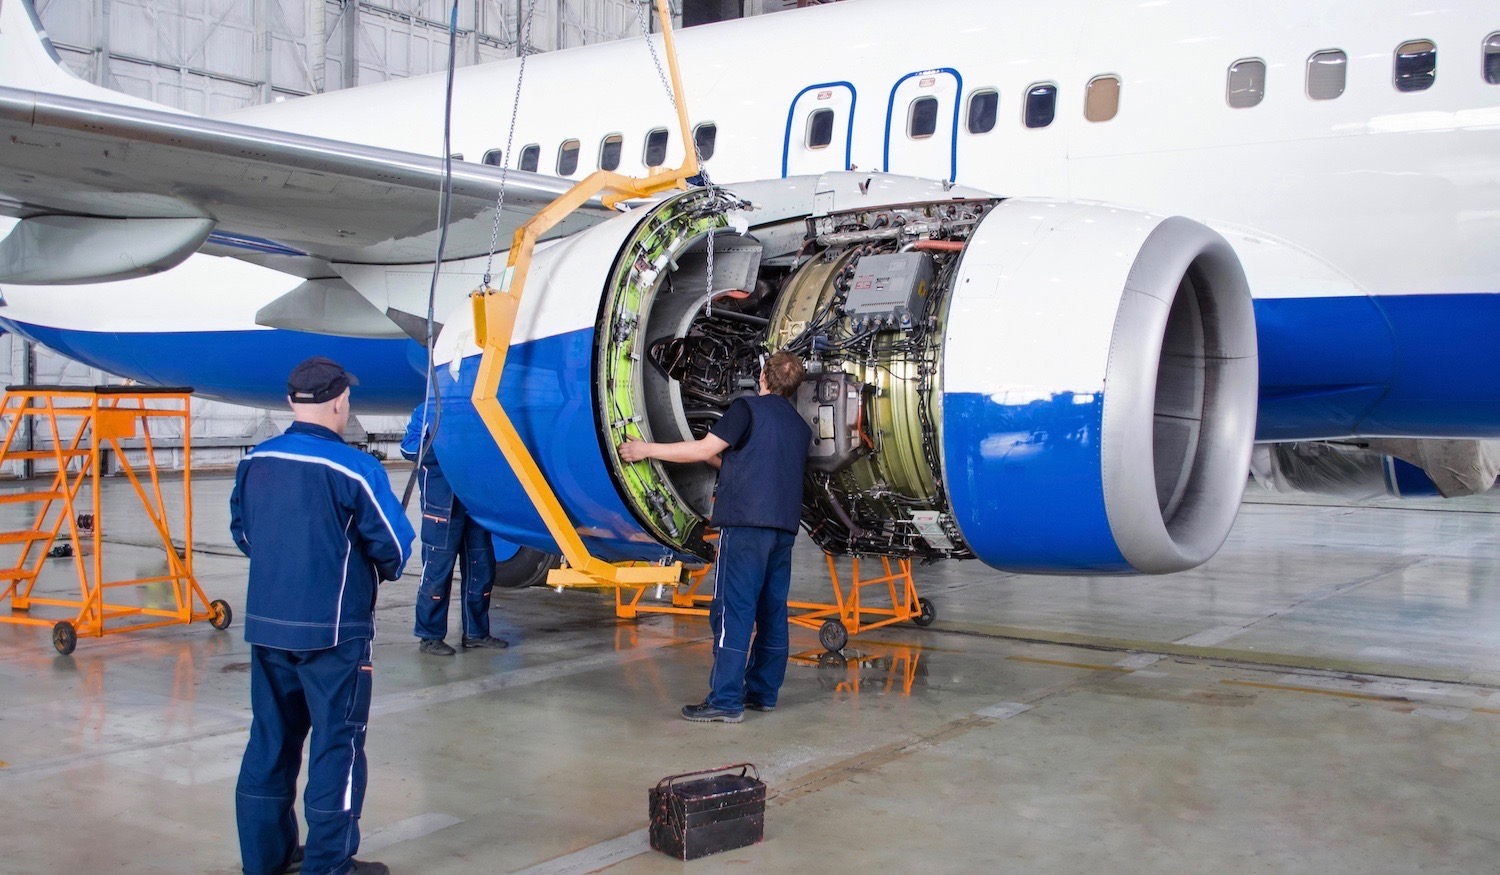 two men fixing jet engine in hanger wearing blue uniform